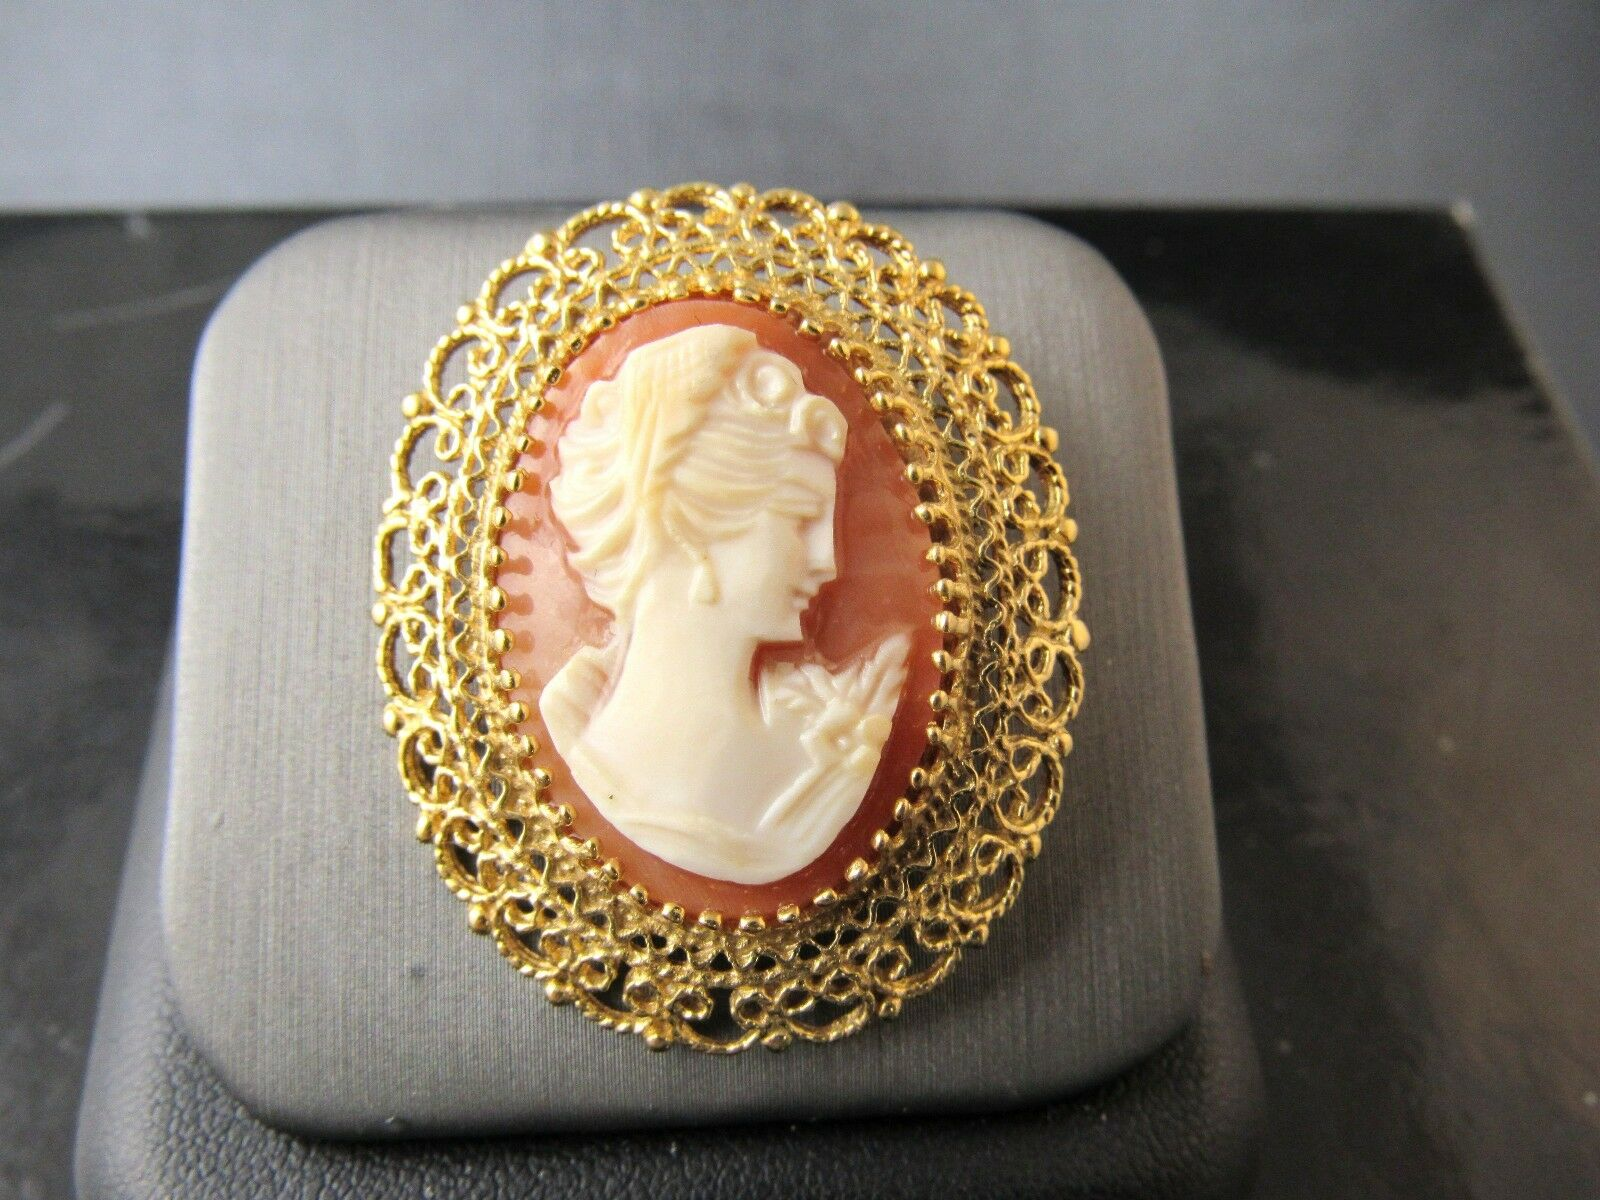 Vintage 14KT Yellow gold Filigree Style Carved Lady Cameo Pin Brooch Pendant